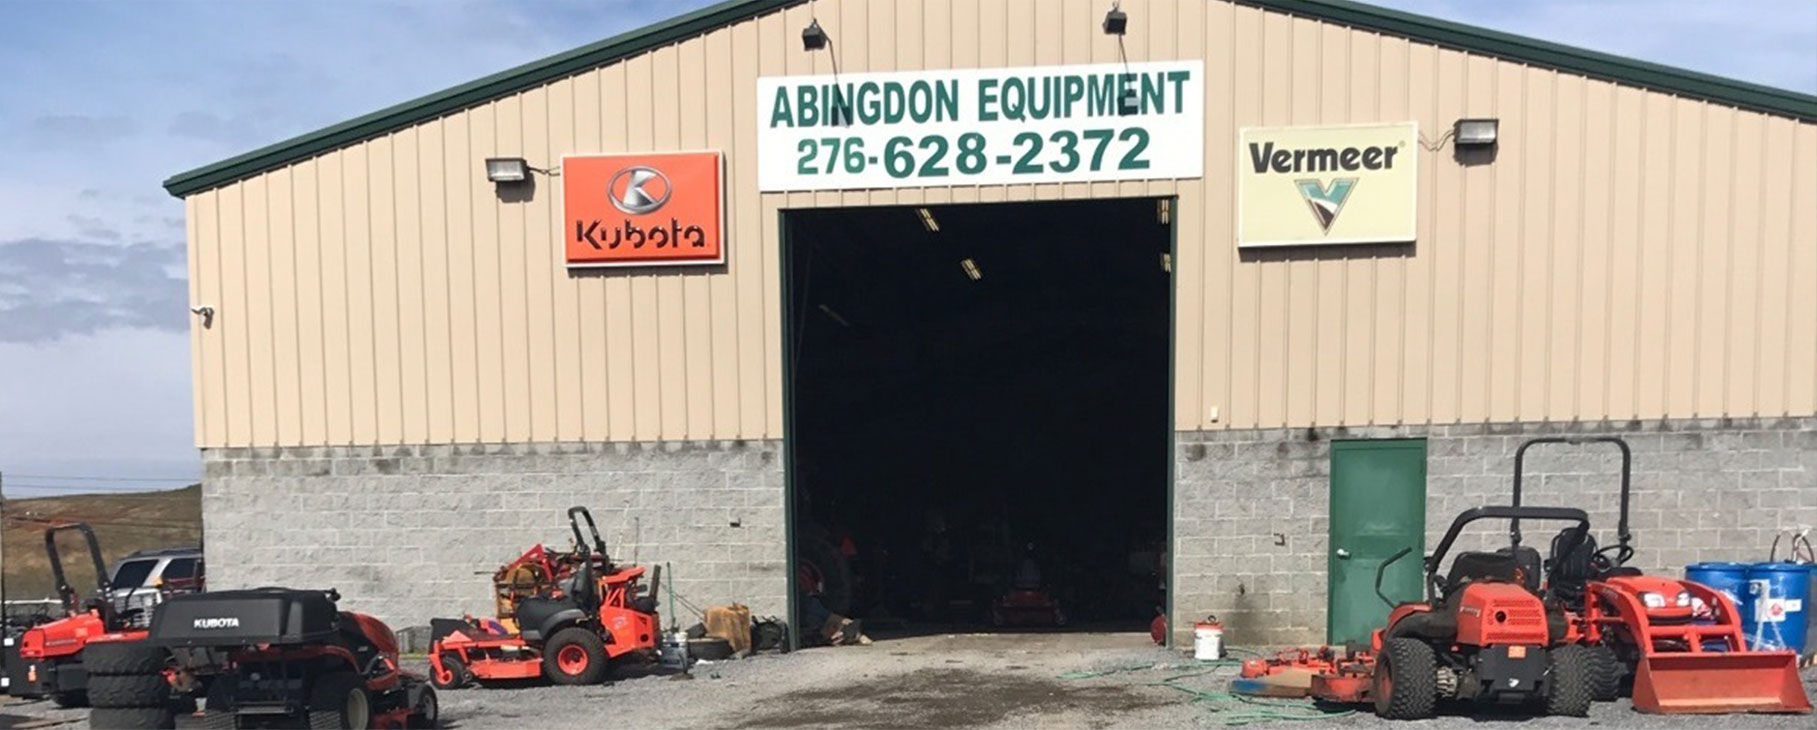 Carries manufacturing brands including Kubota, Vermeer, Land Pride, Krone, Bad Boy, Can-am, and ASV